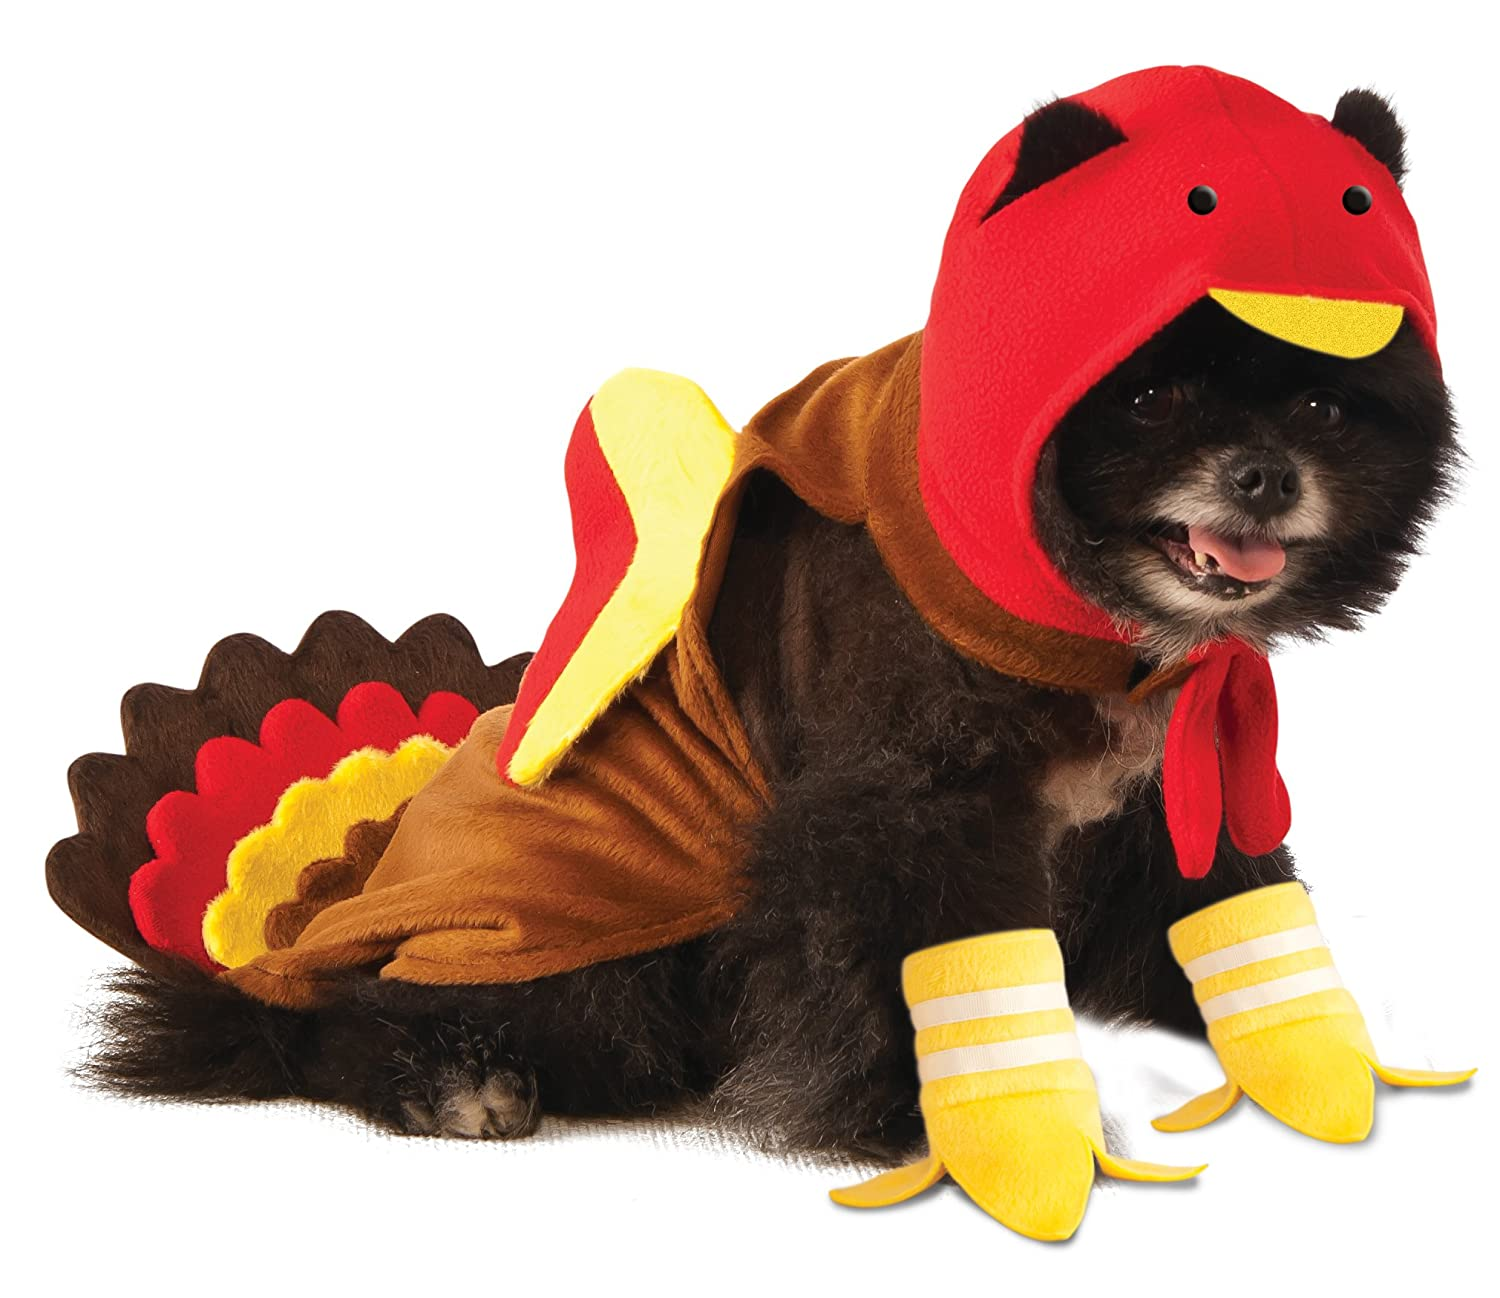 sc 1 st  Amazon.com & Amazon.com : Rubieu0027s Turkey Dog Costume : Pet Supplies